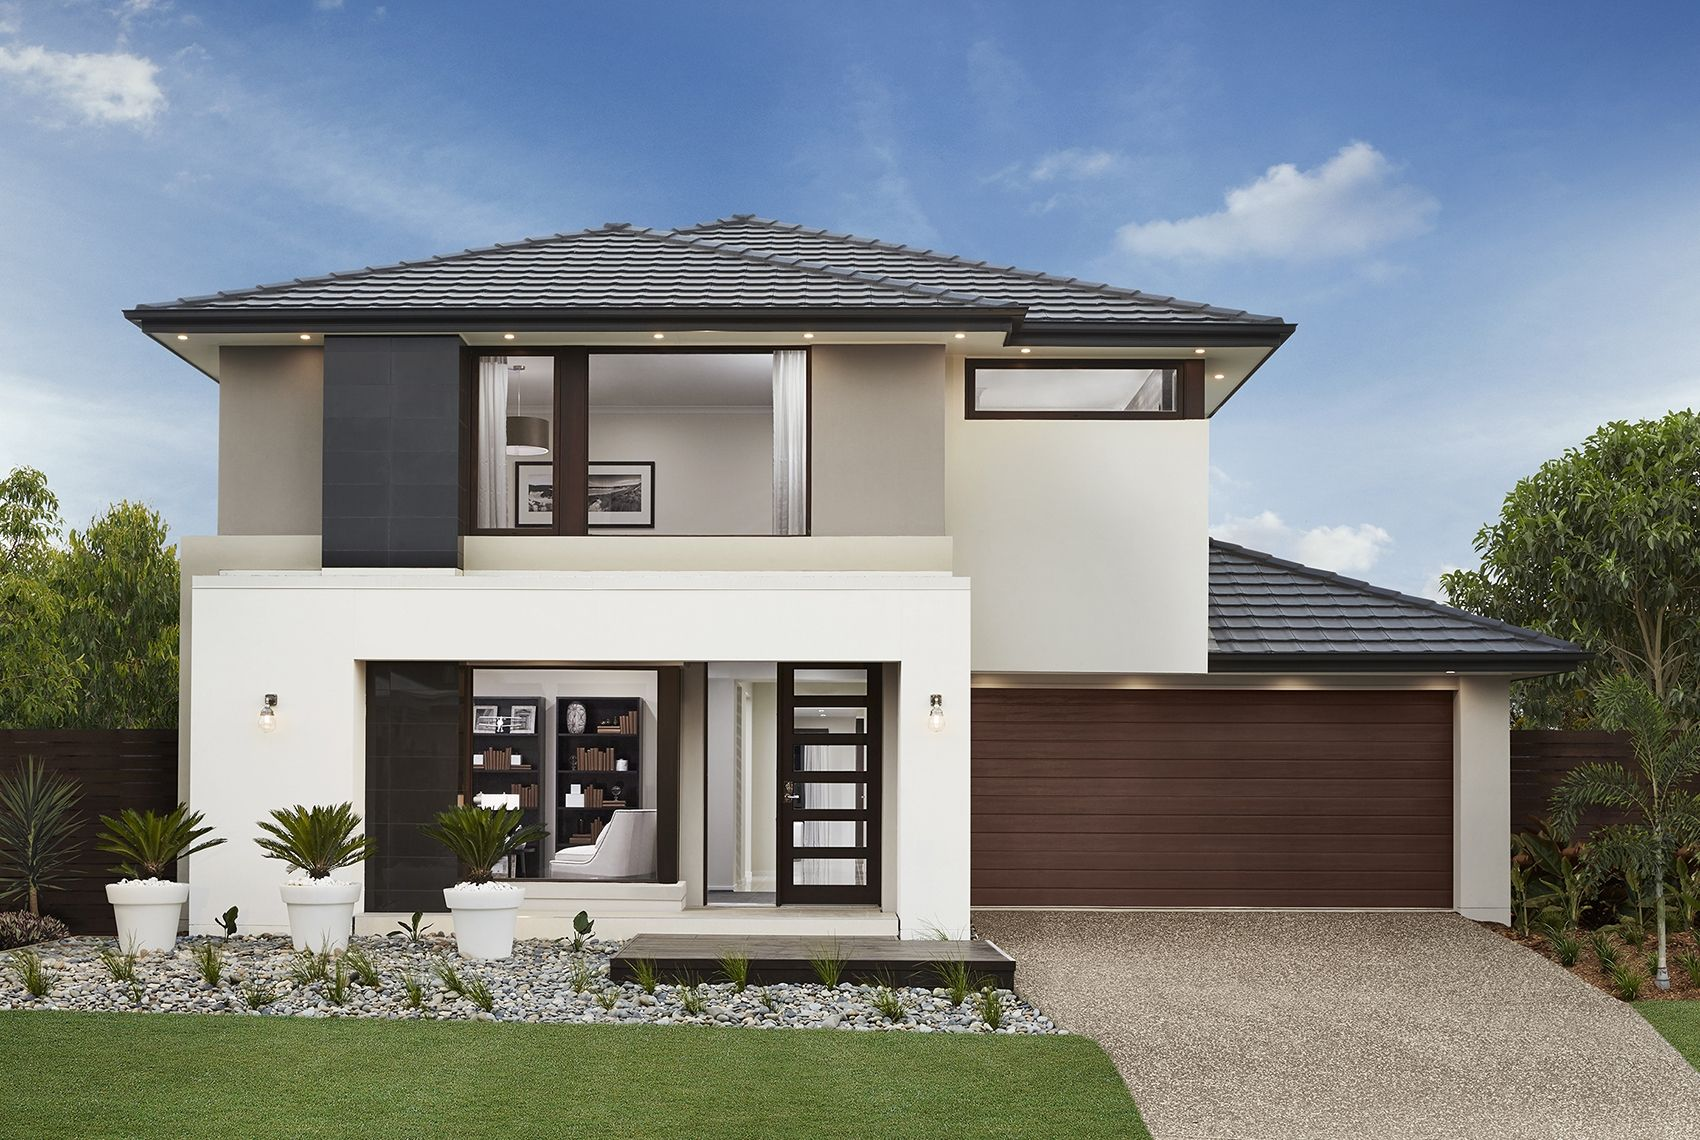 Sahara 39 Portsea Facade Facade House Facade Design Beautiful House Plans